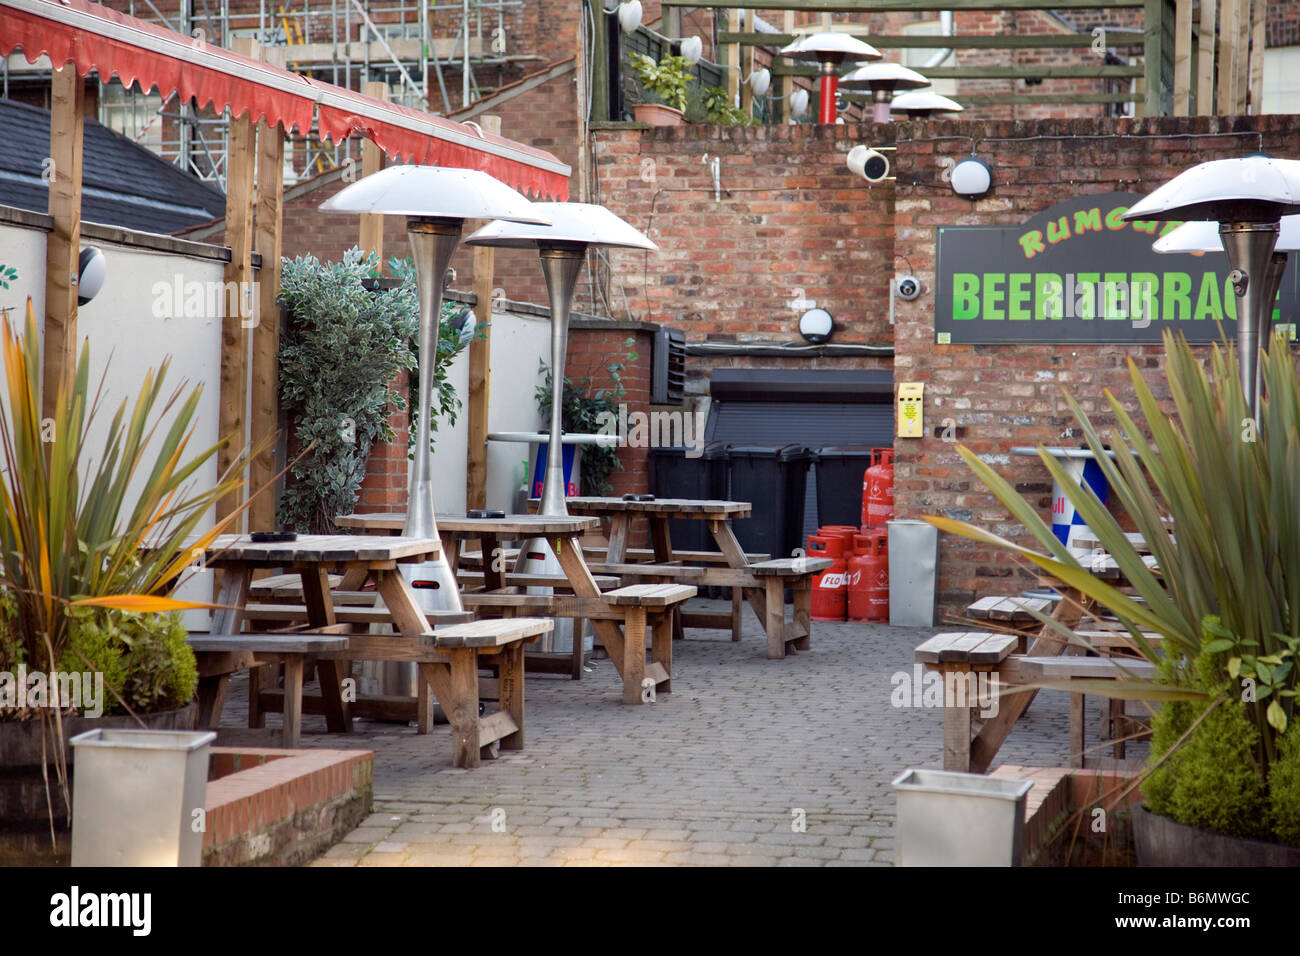 gas heaters and timber trestle tables in a pubs outside beer